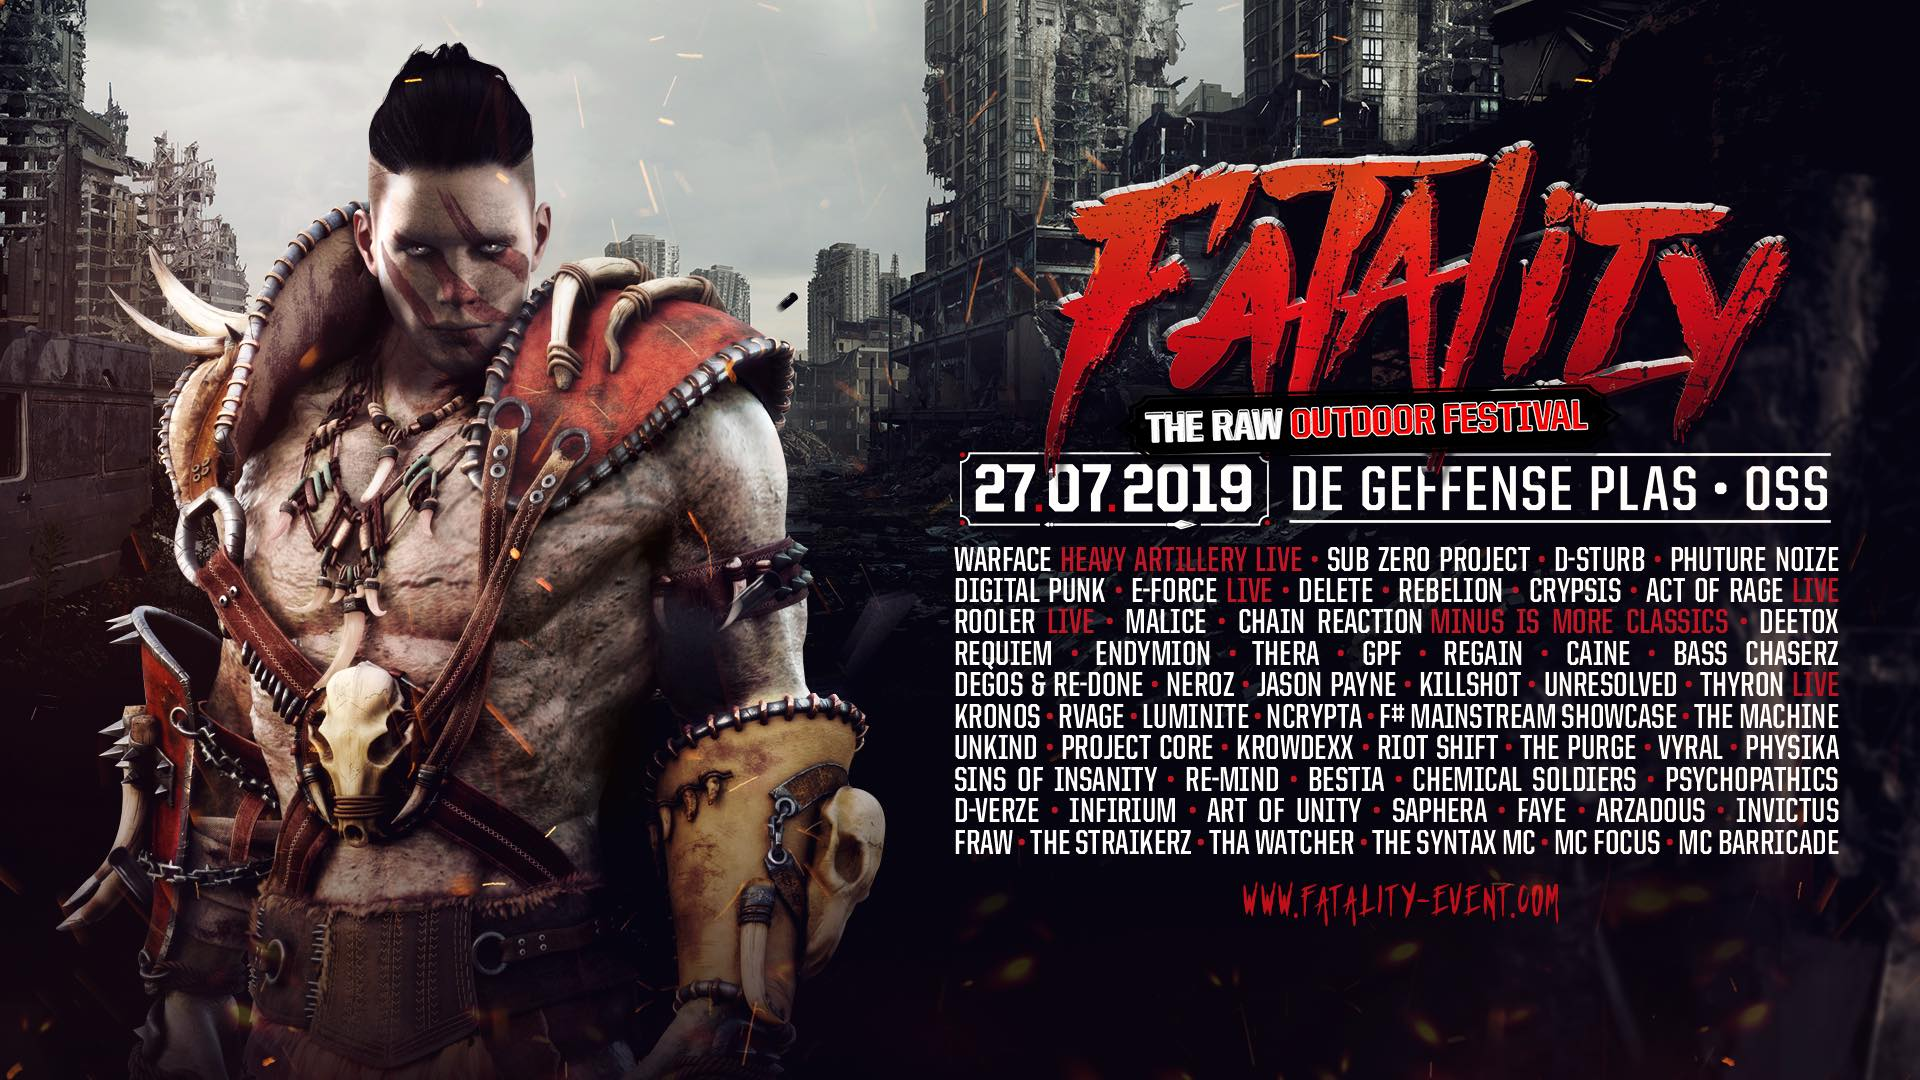 Fatality - The Raw Outdoor Festival 2019